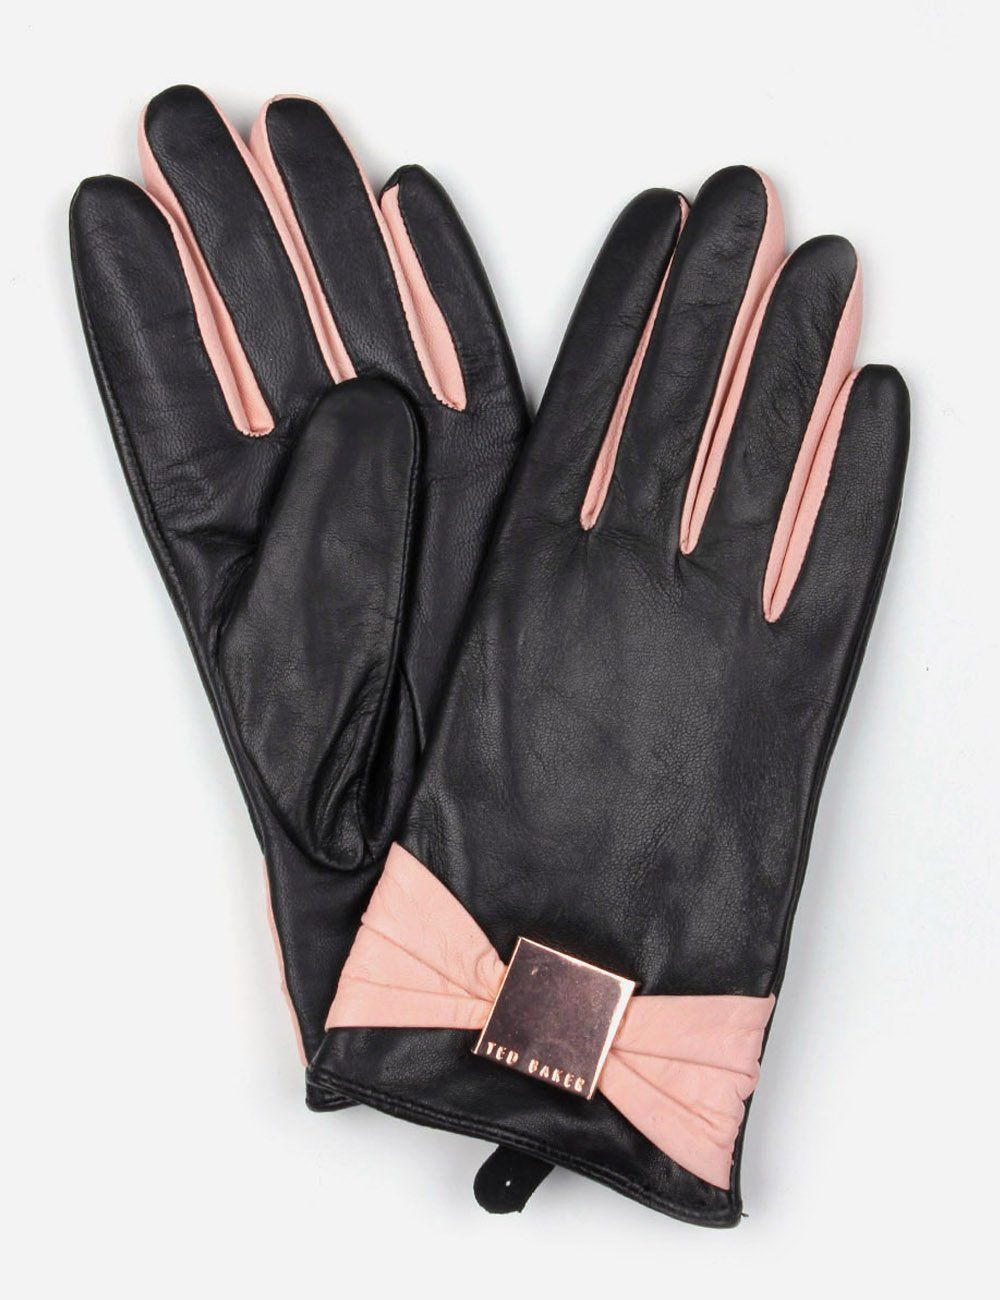 Black leather gloves meaning - Leather Gloves For Women View All Ted Baker View All Accessories View All